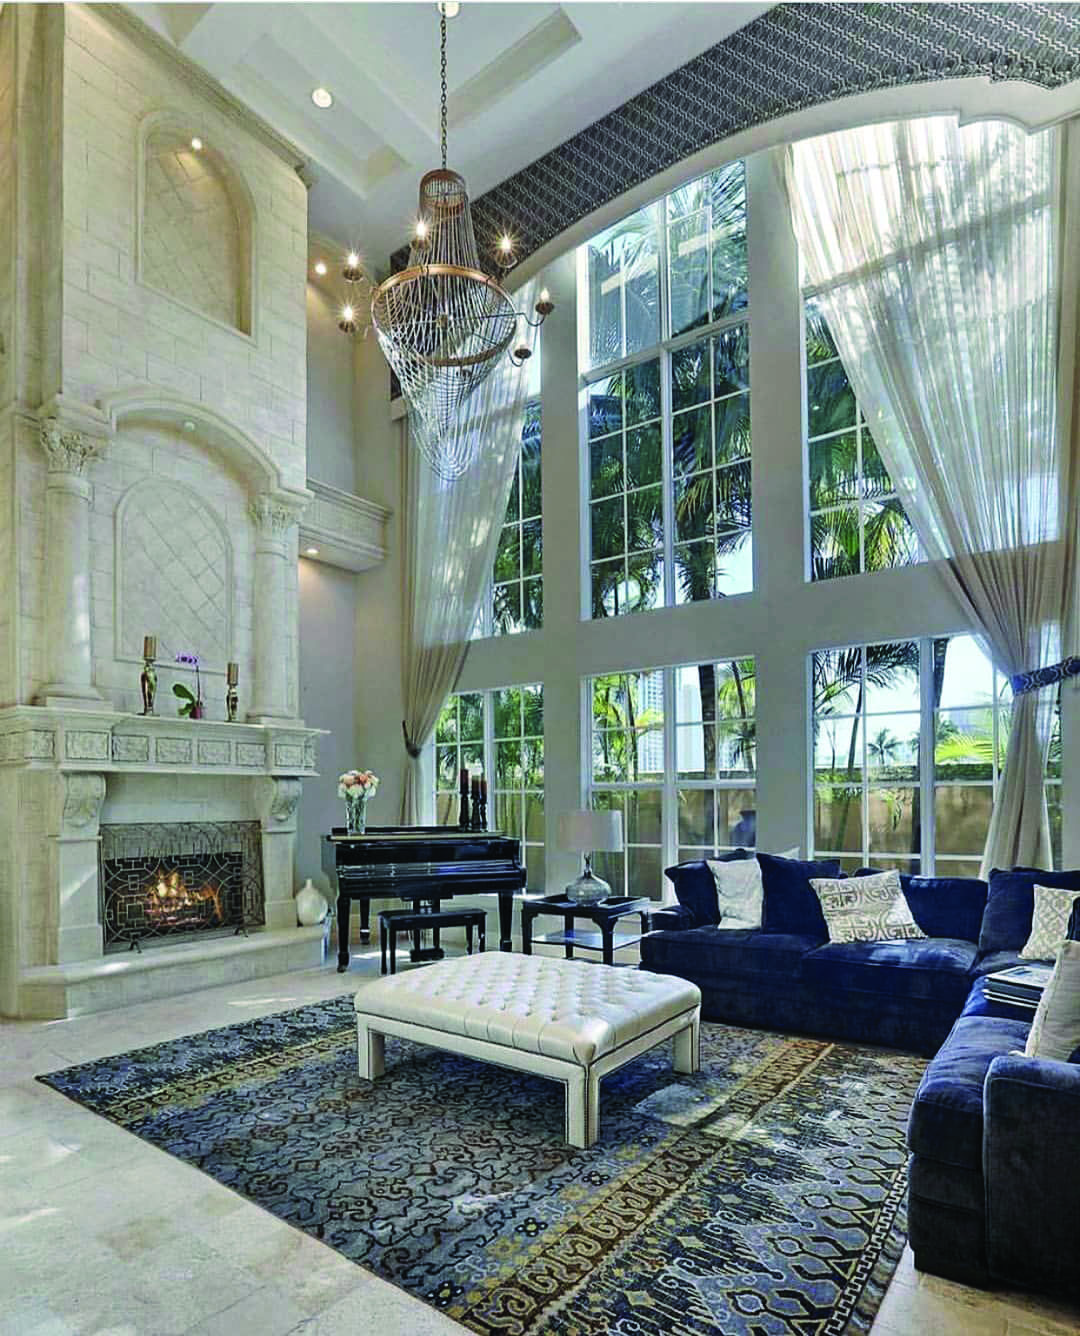 New Home Designs Latest Luxury Living Rooms Interior: 15 Luxury Living Room Designs (Stunning).